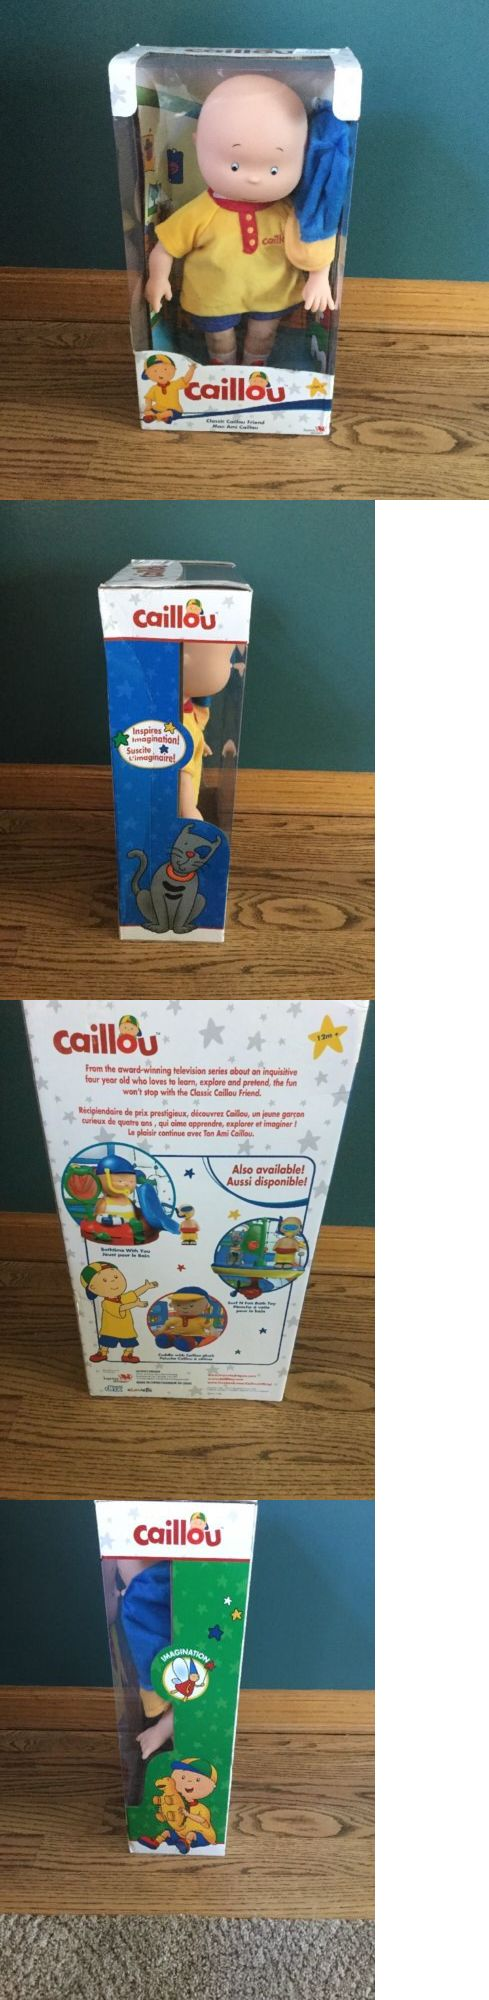 Caillou 20903: Caillou Classic Friend Doll 14 Brand New In Original Box -> BUY IT NOW ONLY: $96.99 on eBay!